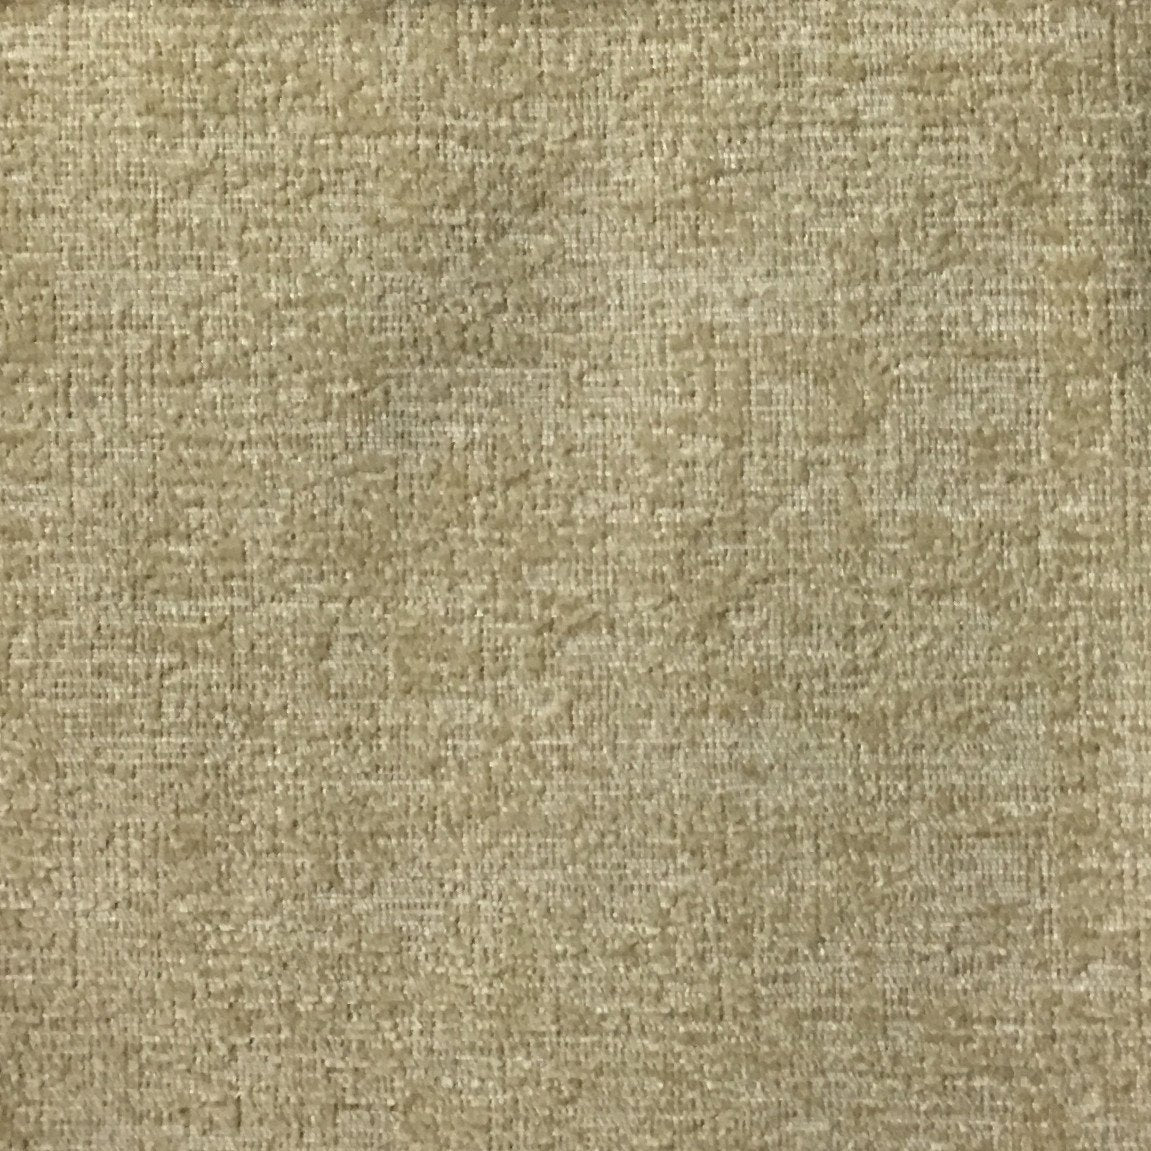 Splendid Textured Chenille Upholstery Fabric By The Yard